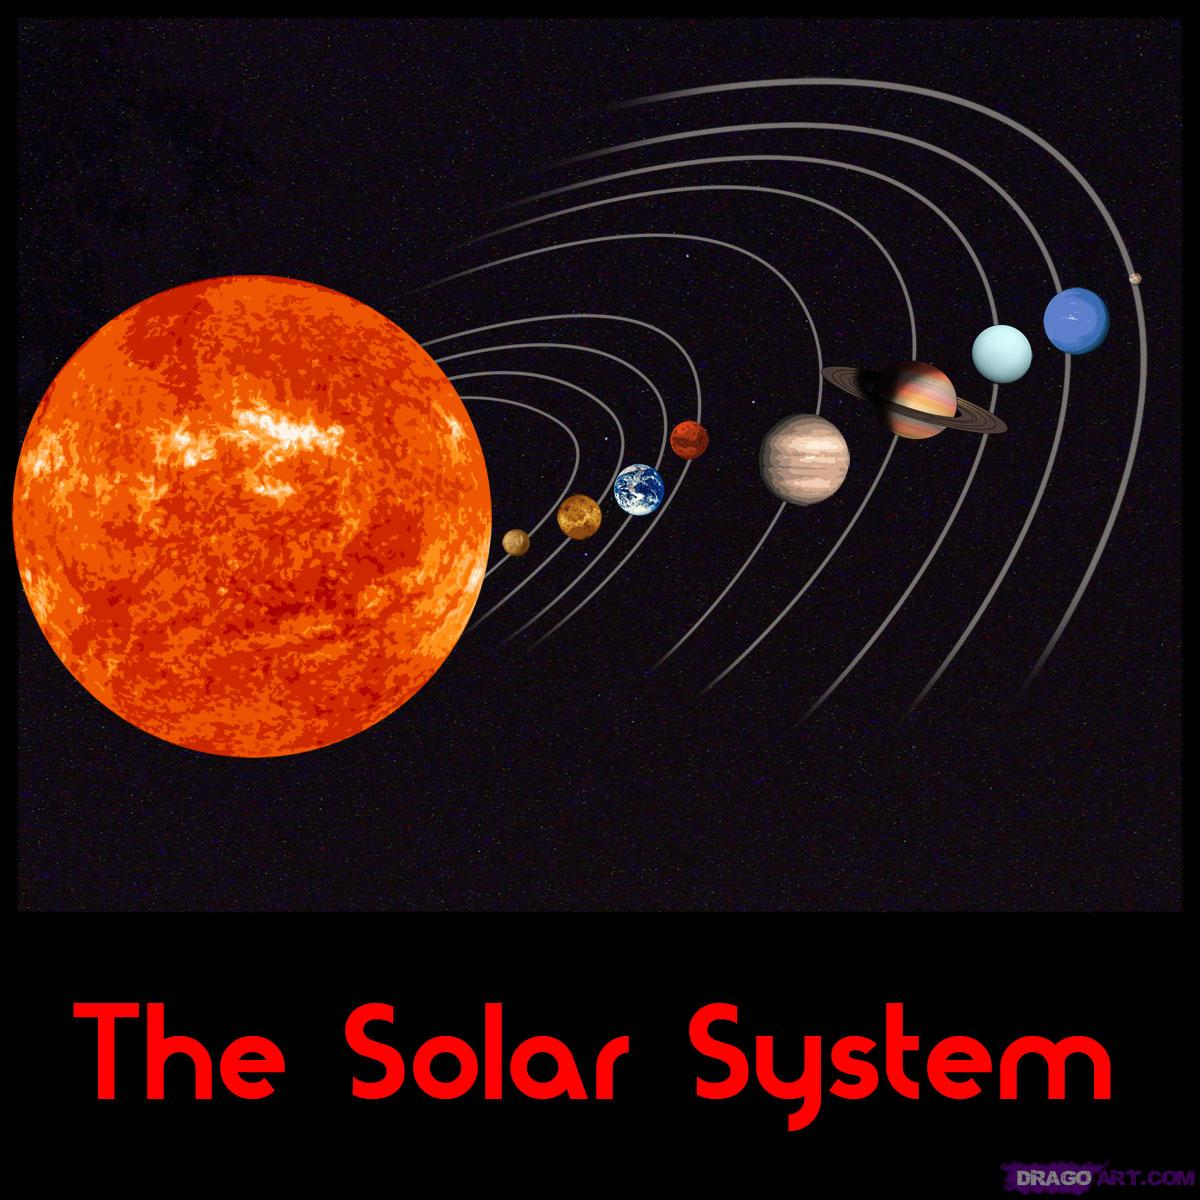 the solar system 3 - photo #19